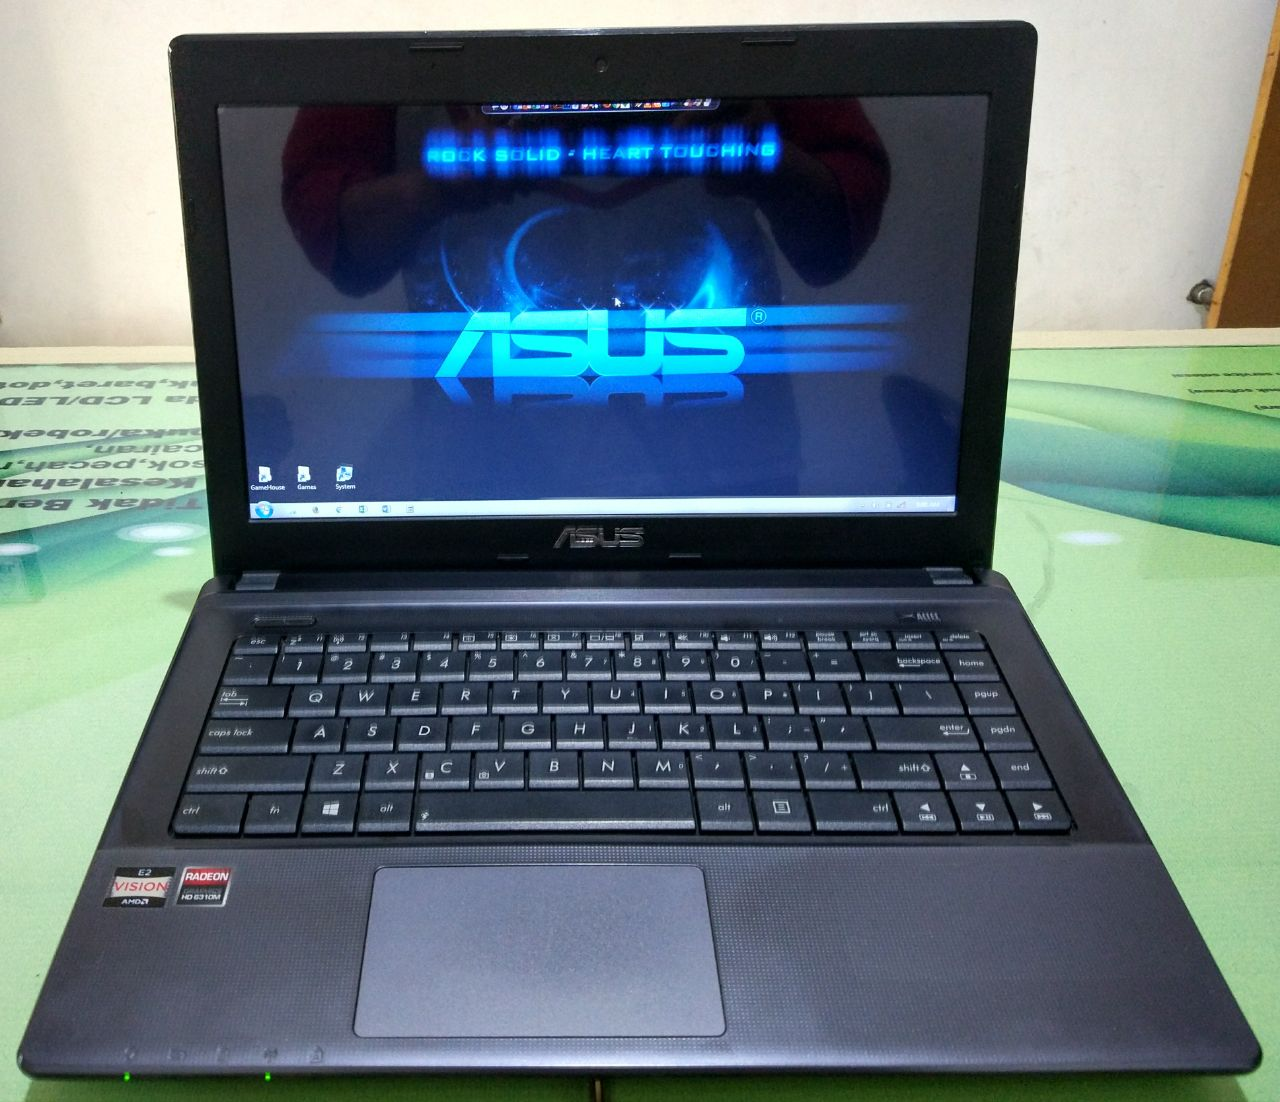 DRIVERS FOR ASUS X45U NOTEBOOK